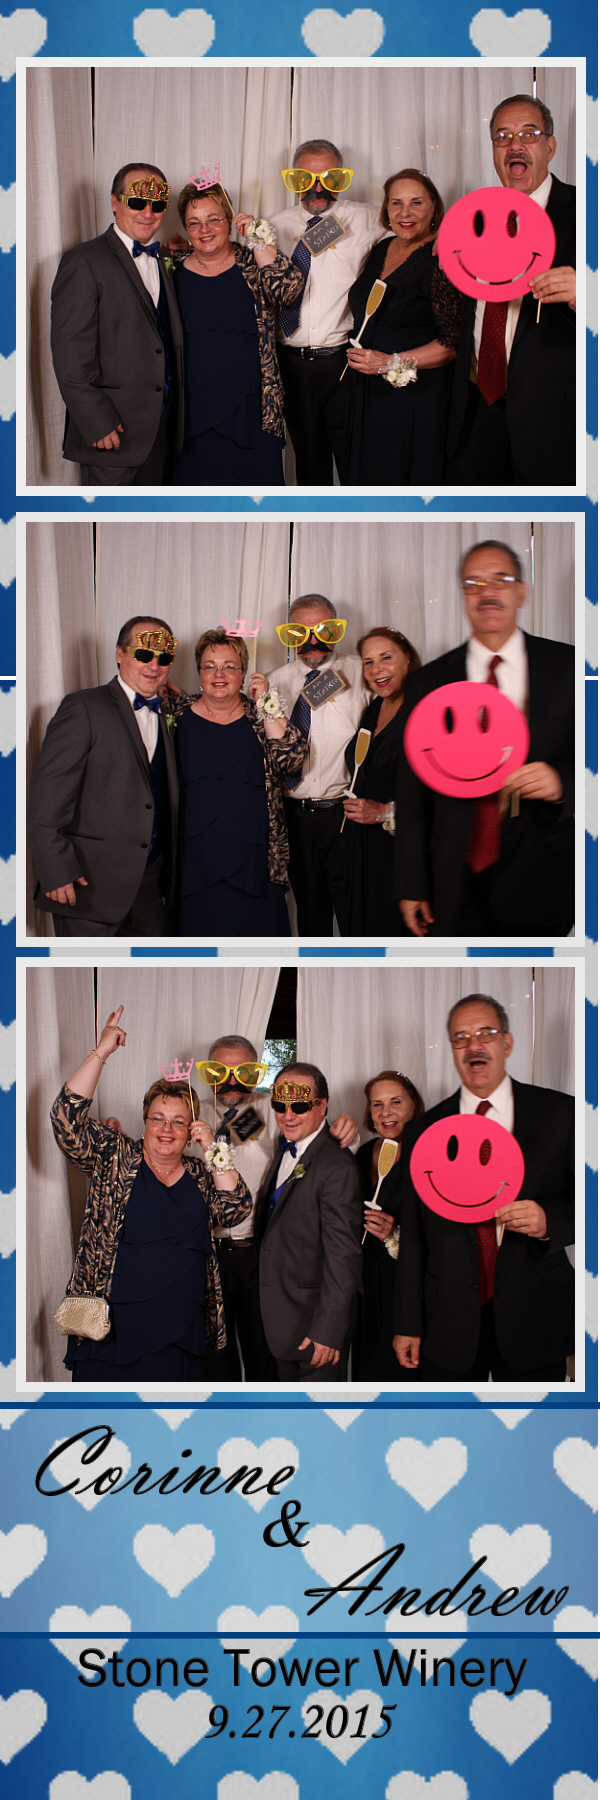 Guest House Events Photo Booth C&A (17).jpg